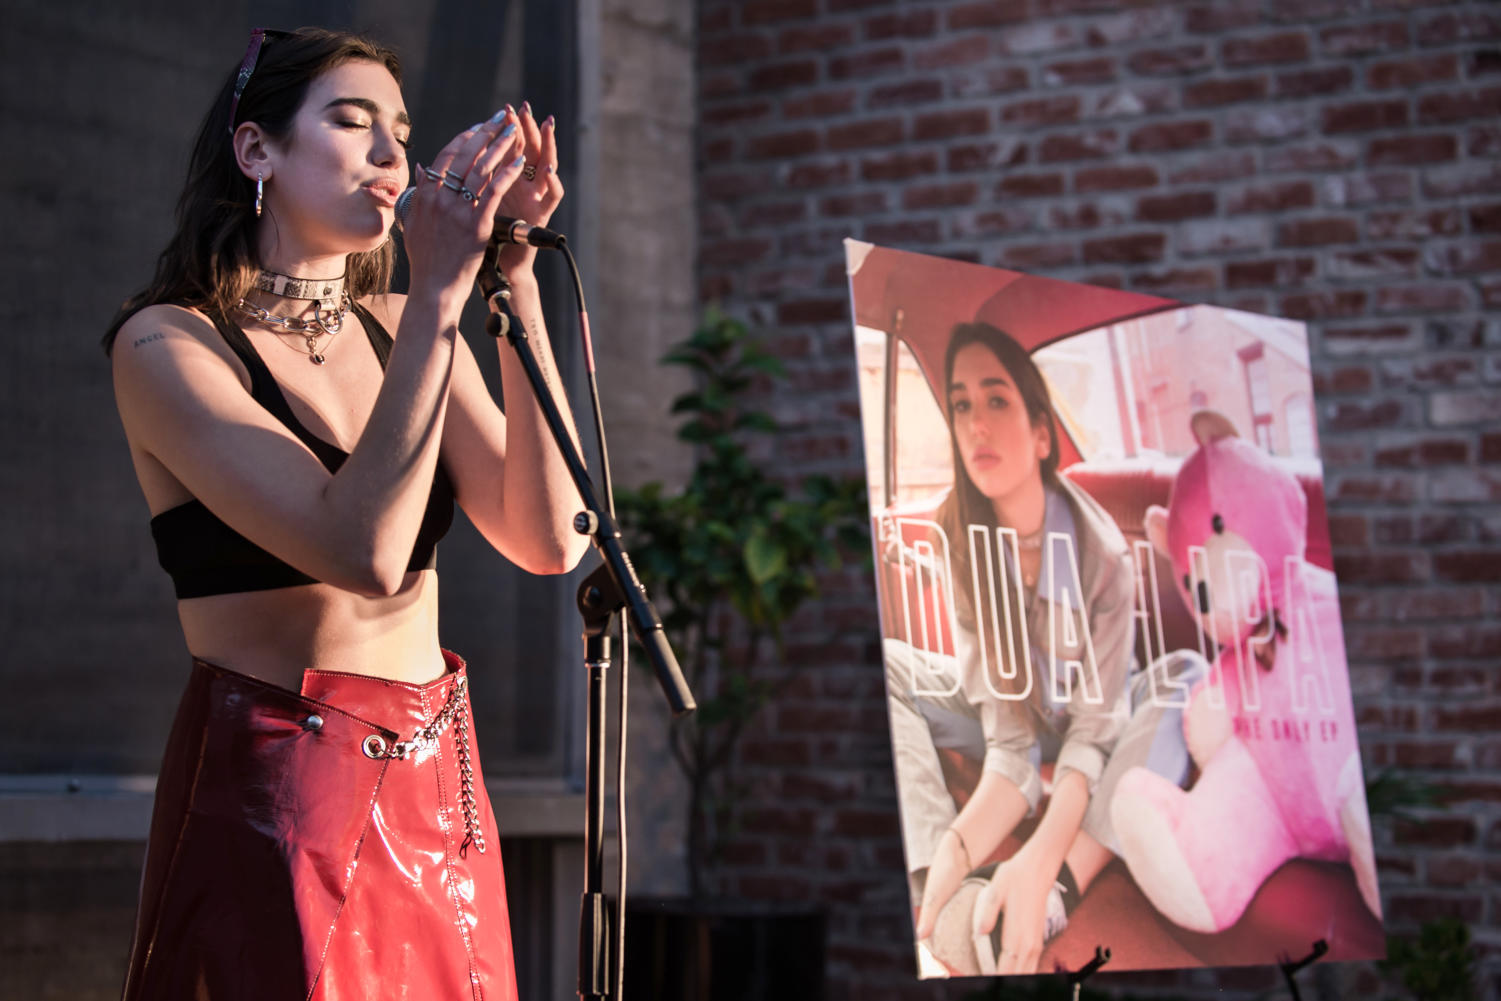 Dua Lipa performs at the Space 15 Twenty event in April 2017.